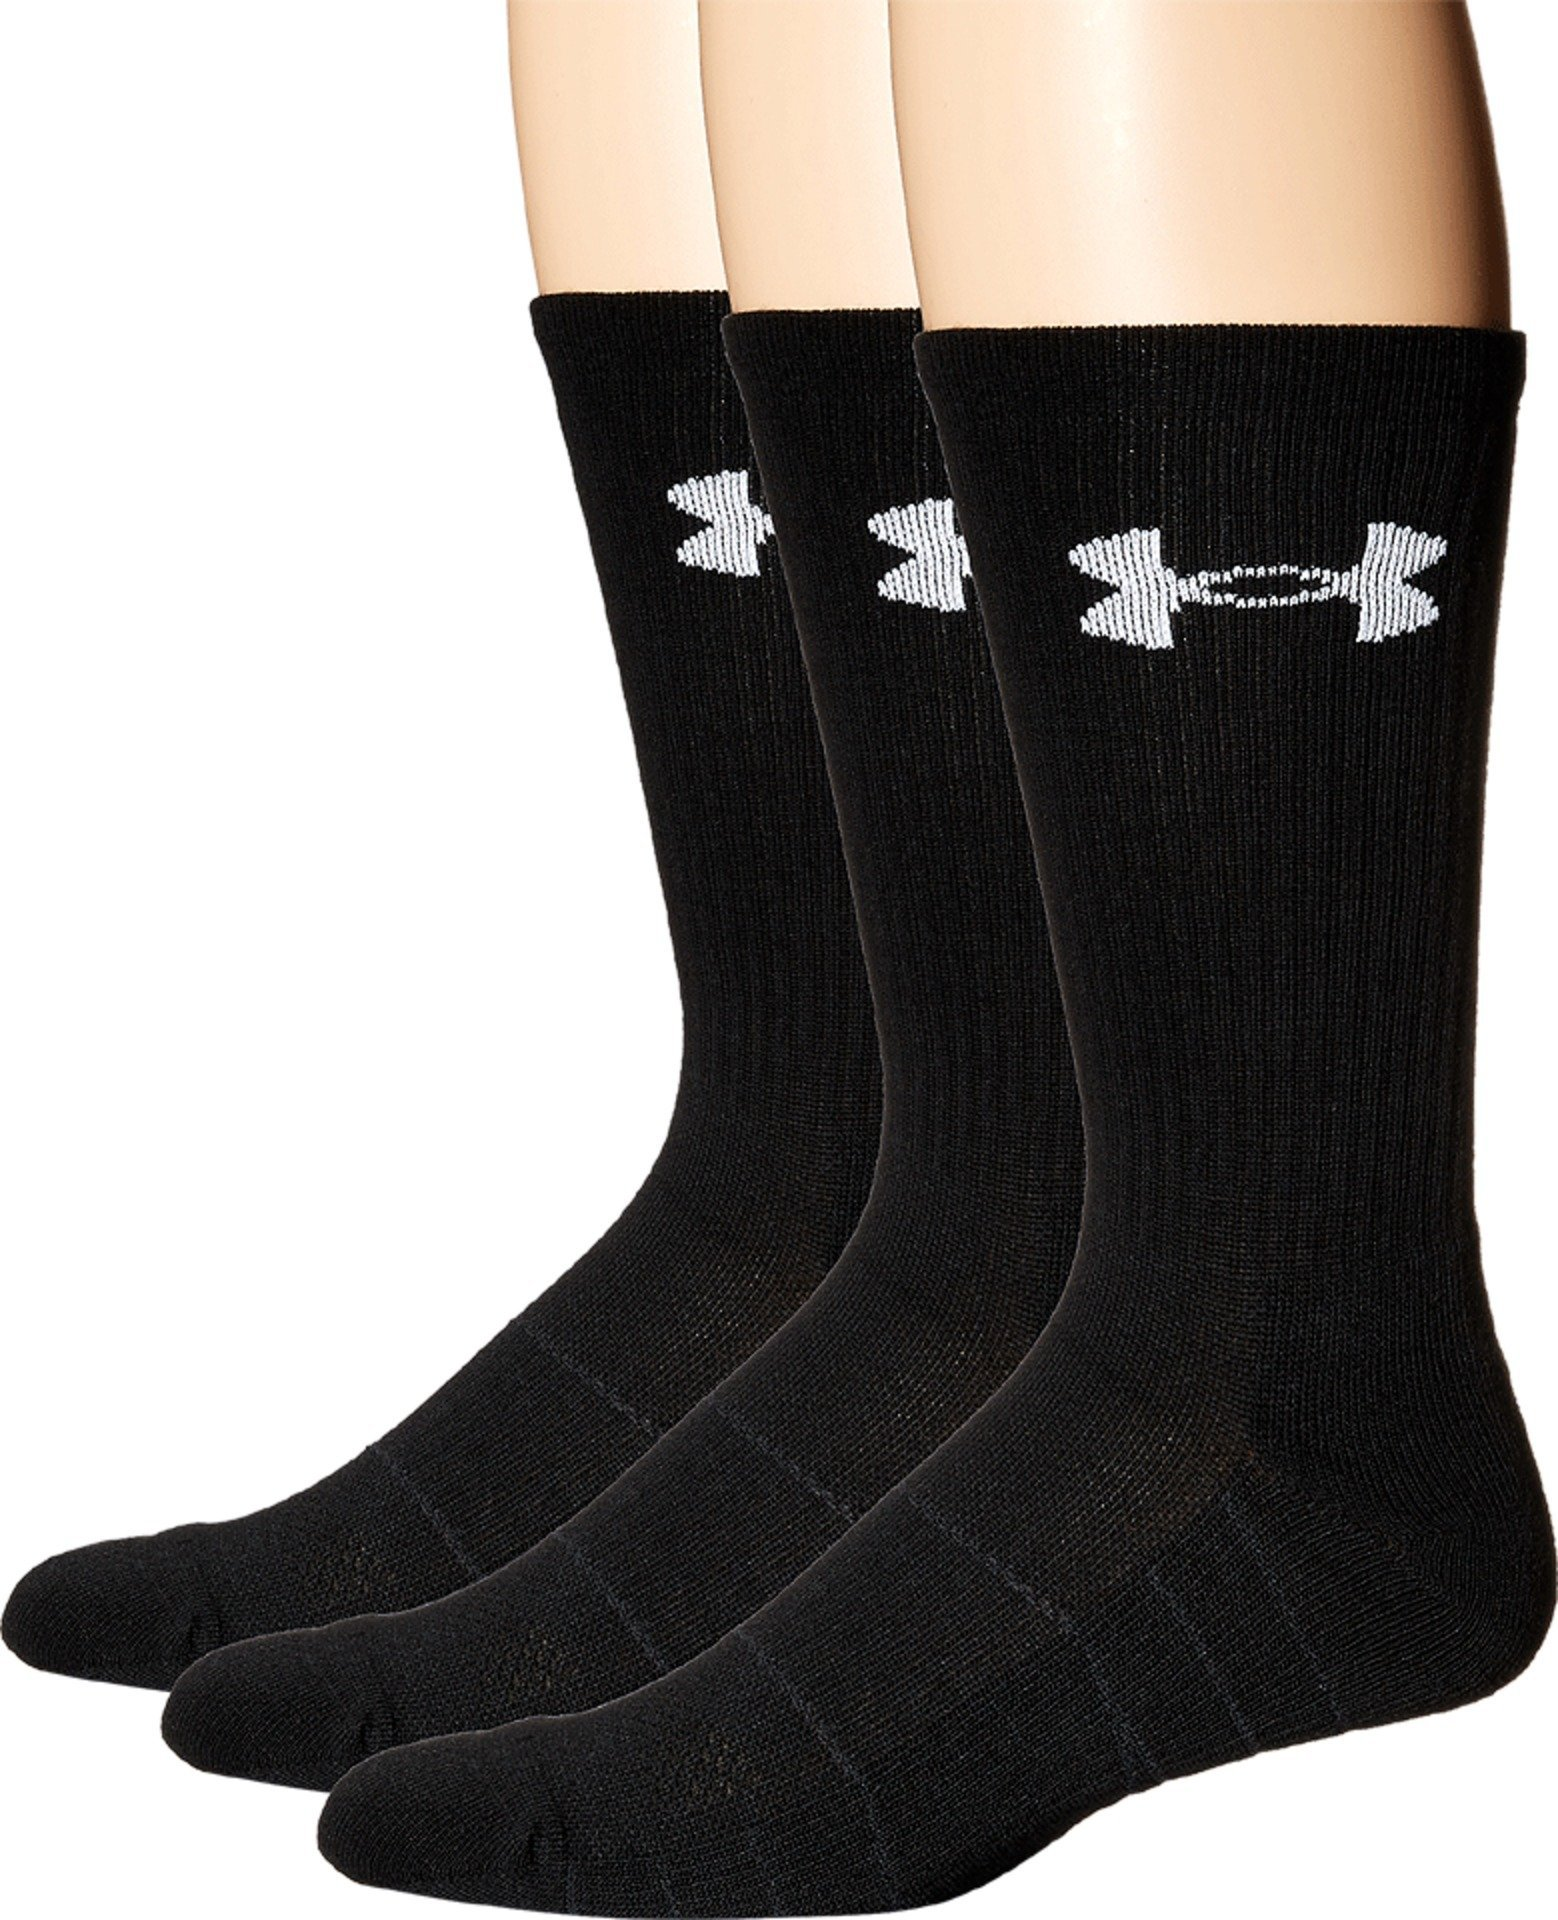 Under Armour Men's Elevated Performance Crew Socks (3 Pack), Black, Large by Under Armour